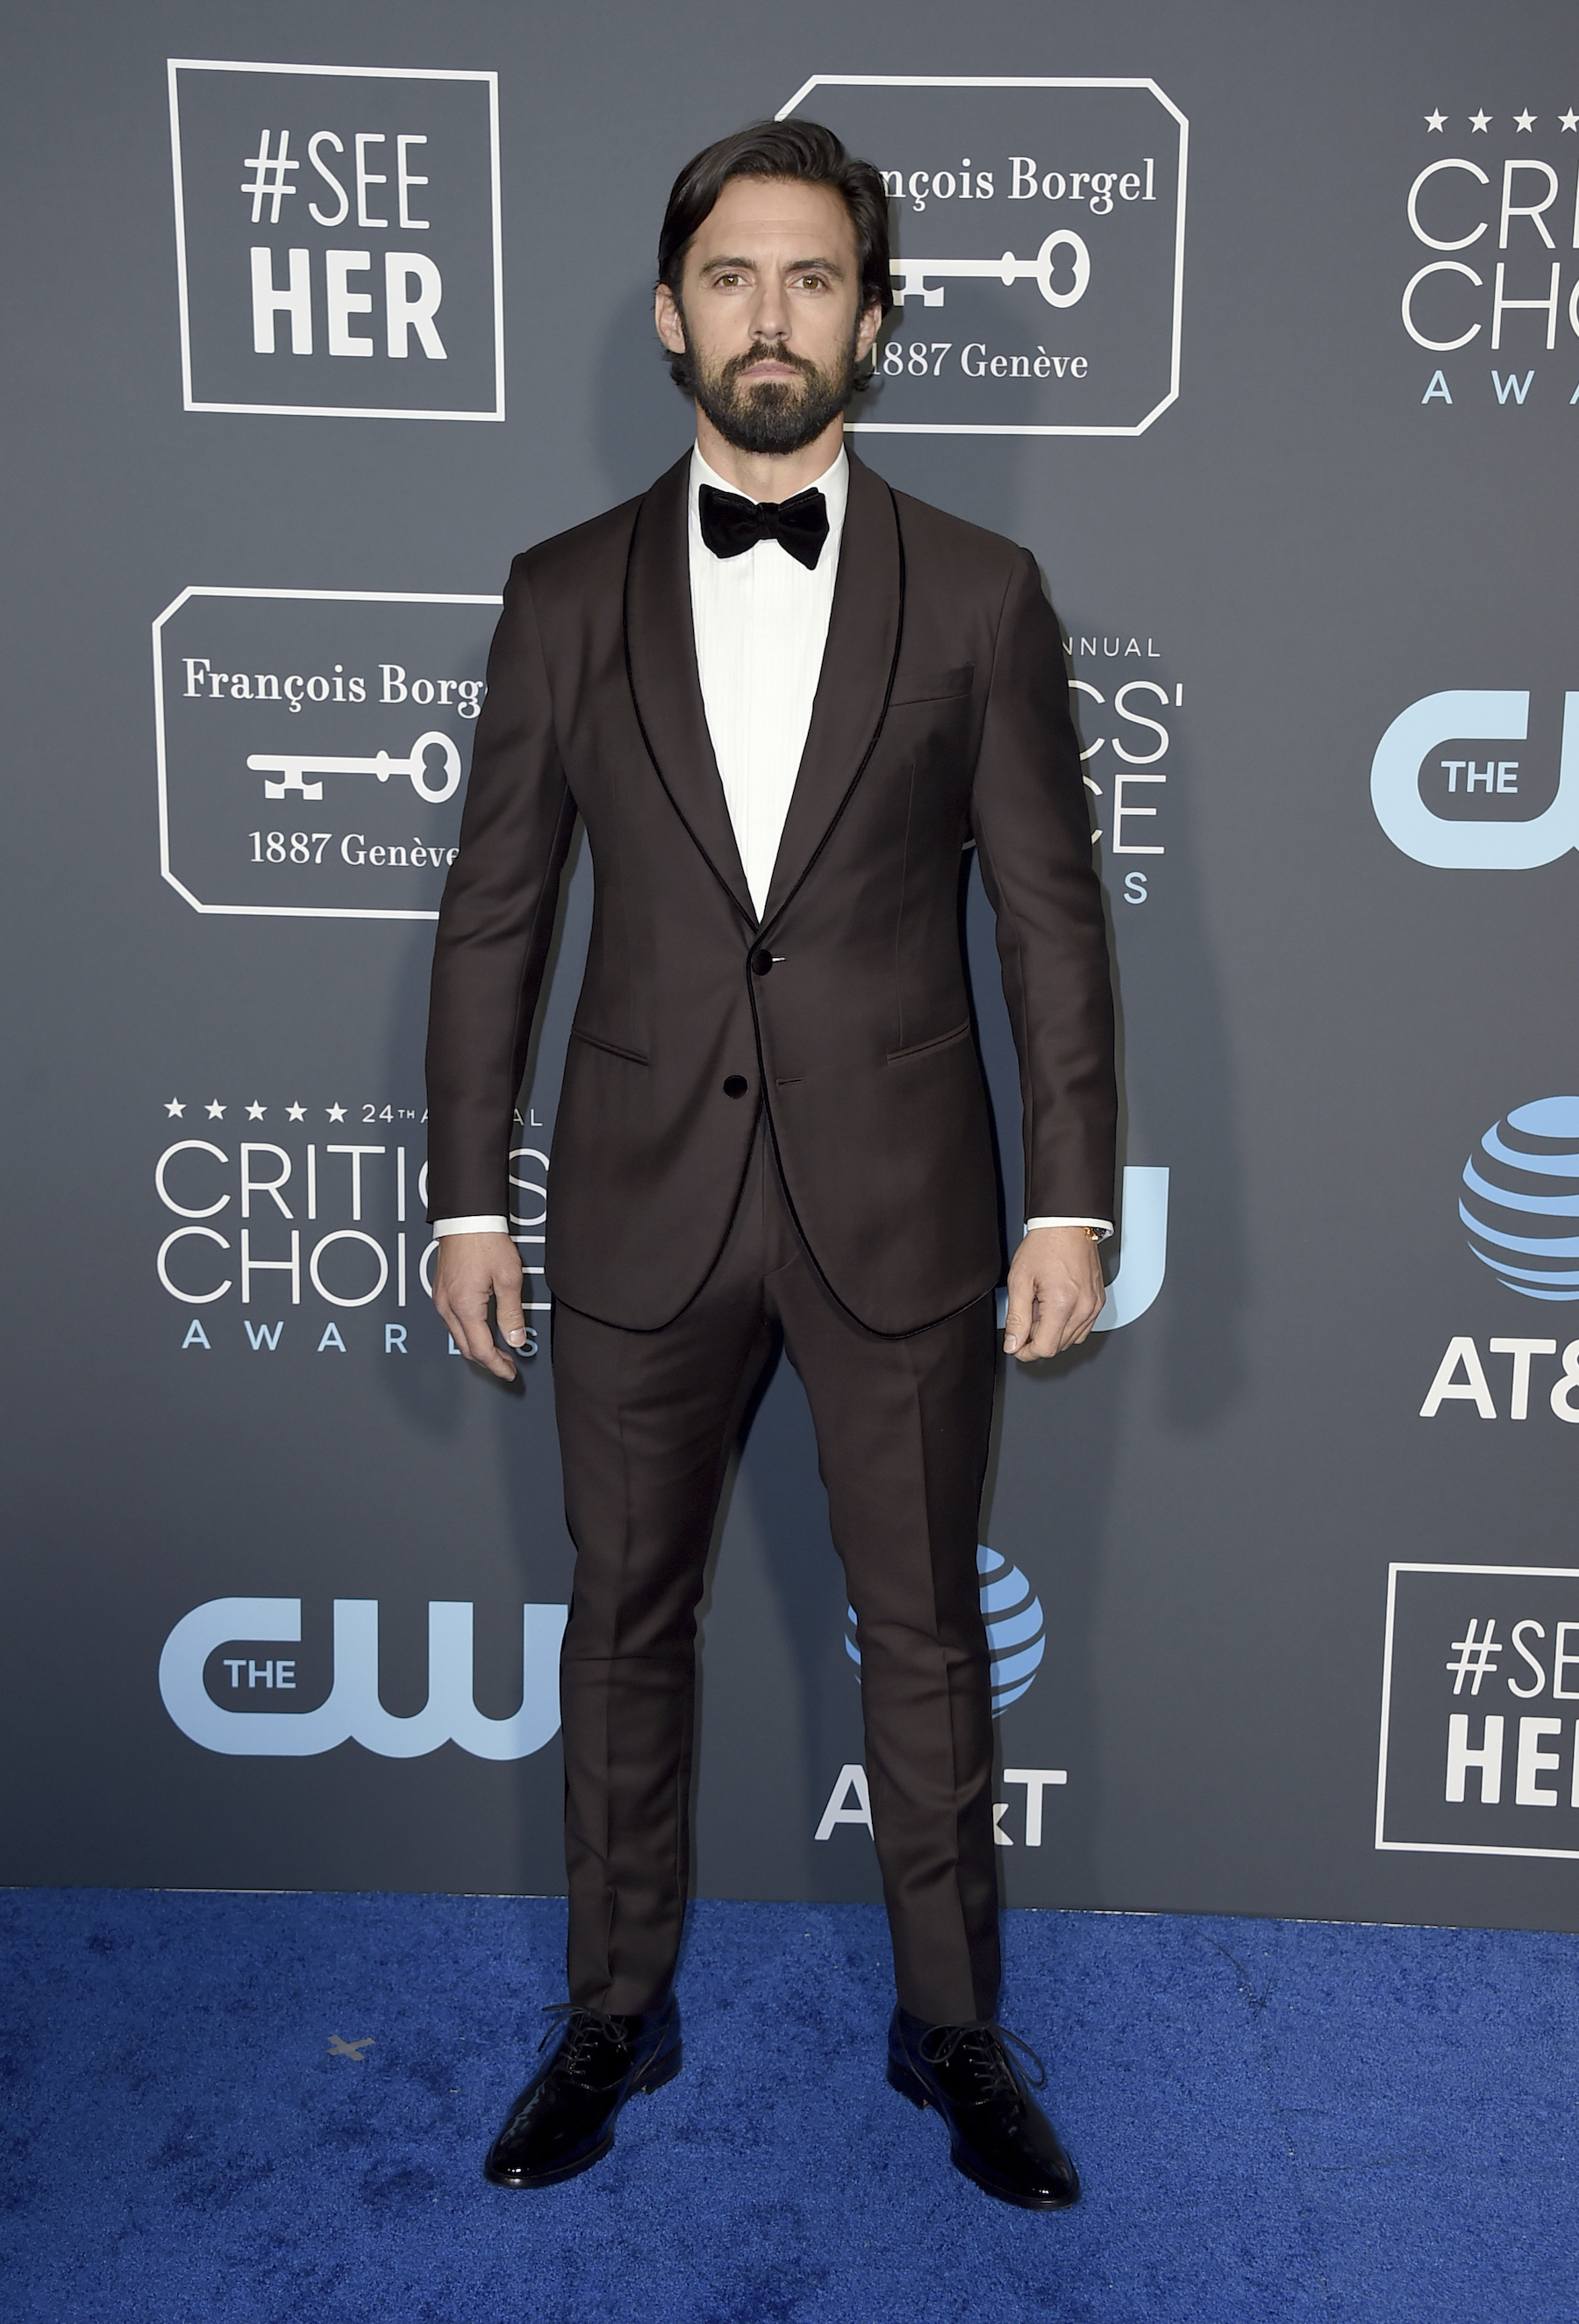 <div class='meta'><div class='origin-logo' data-origin='AP'></div><span class='caption-text' data-credit='Jordan Strauss/Invision/AP'>Milo Ventimiglia arrives at the 24th annual Critics' Choice Awards on Sunday, Jan. 13, 2019, at the Barker Hangar in Santa Monica, Calif.</span></div>